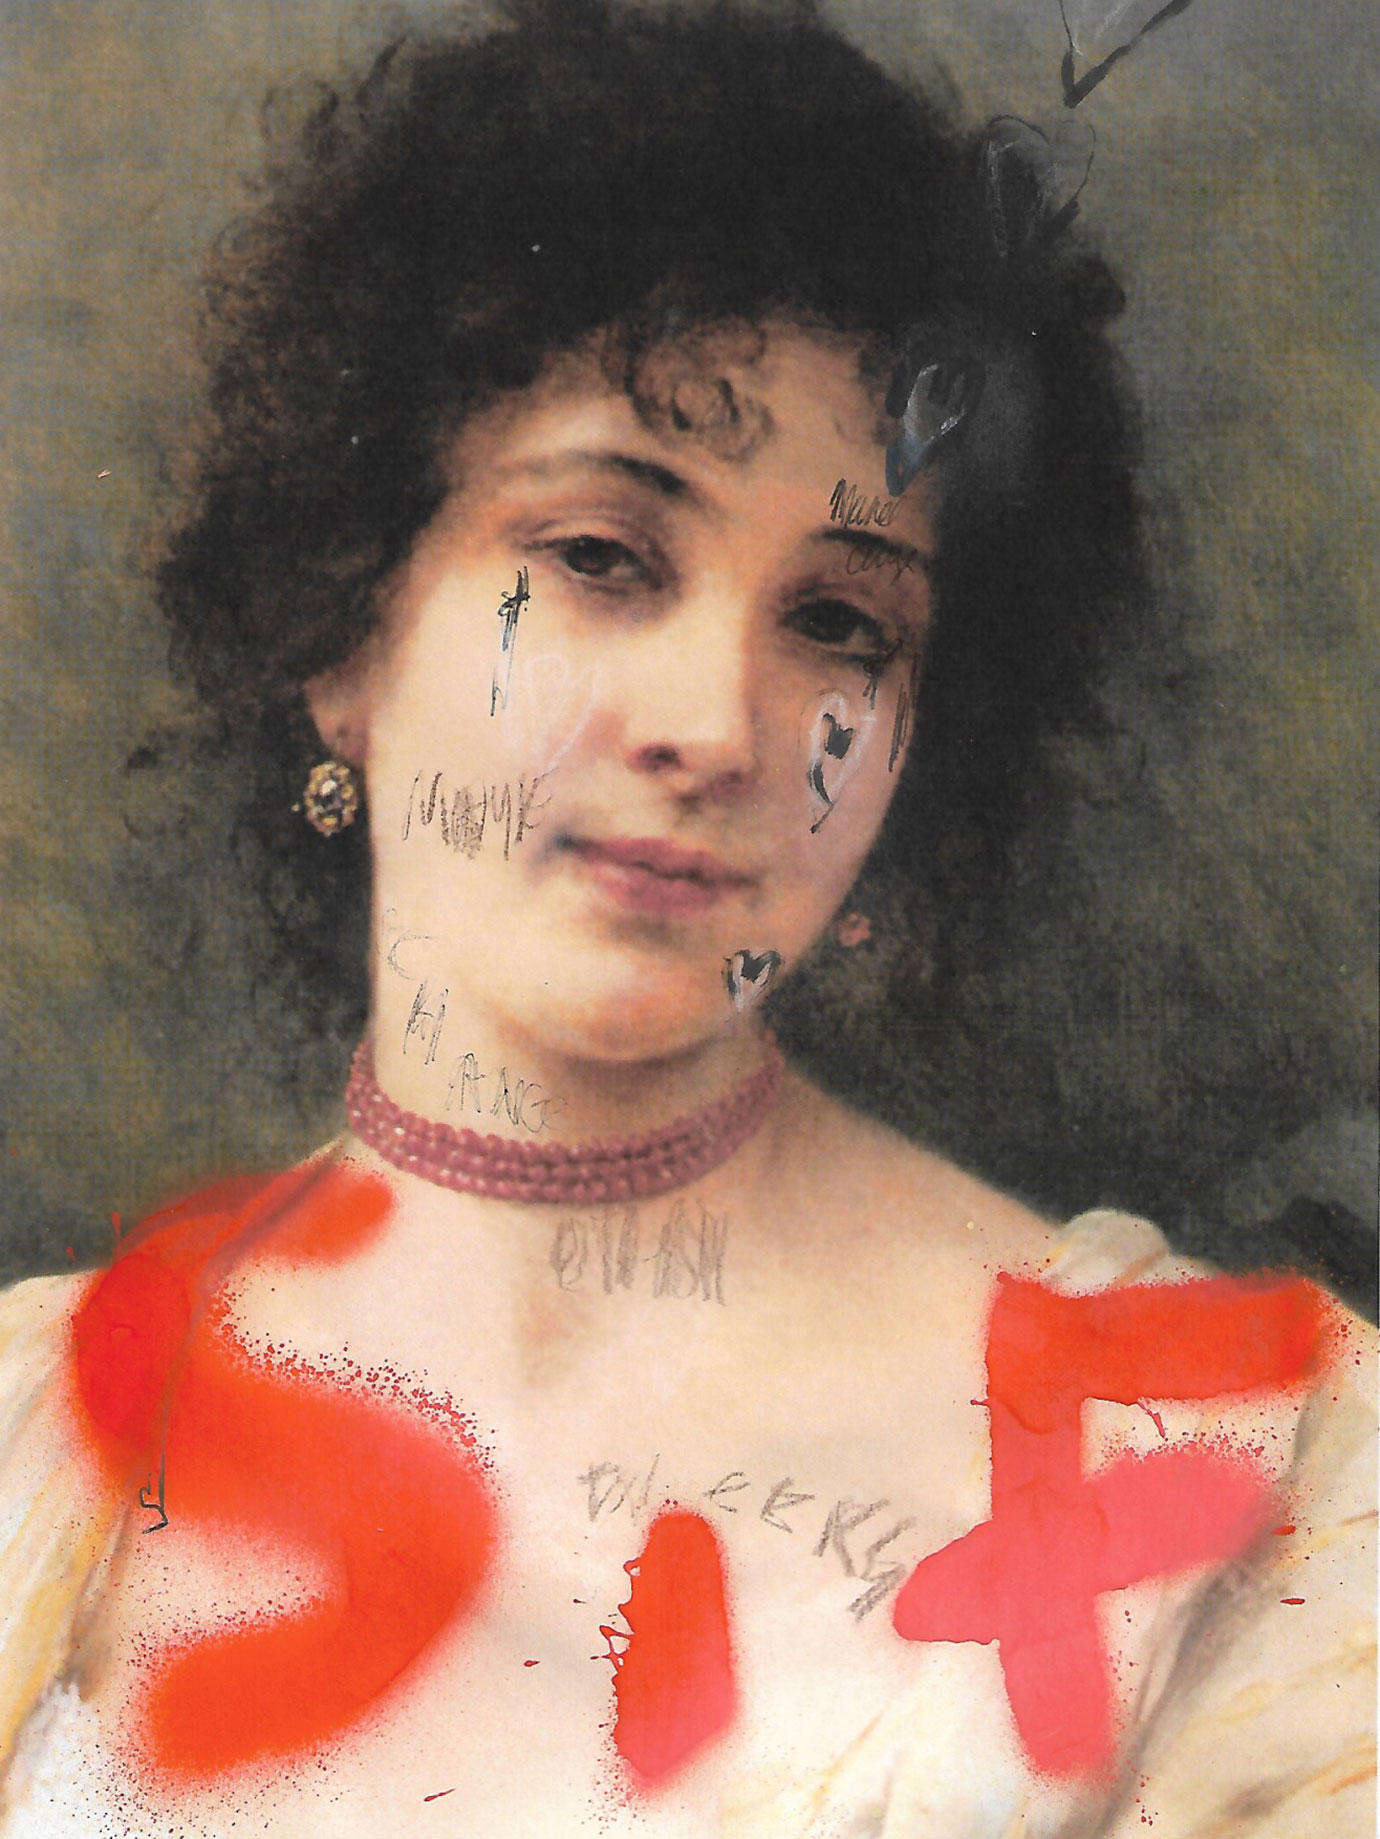 A classical painting of a woman with SIF written in red graffiti on it.